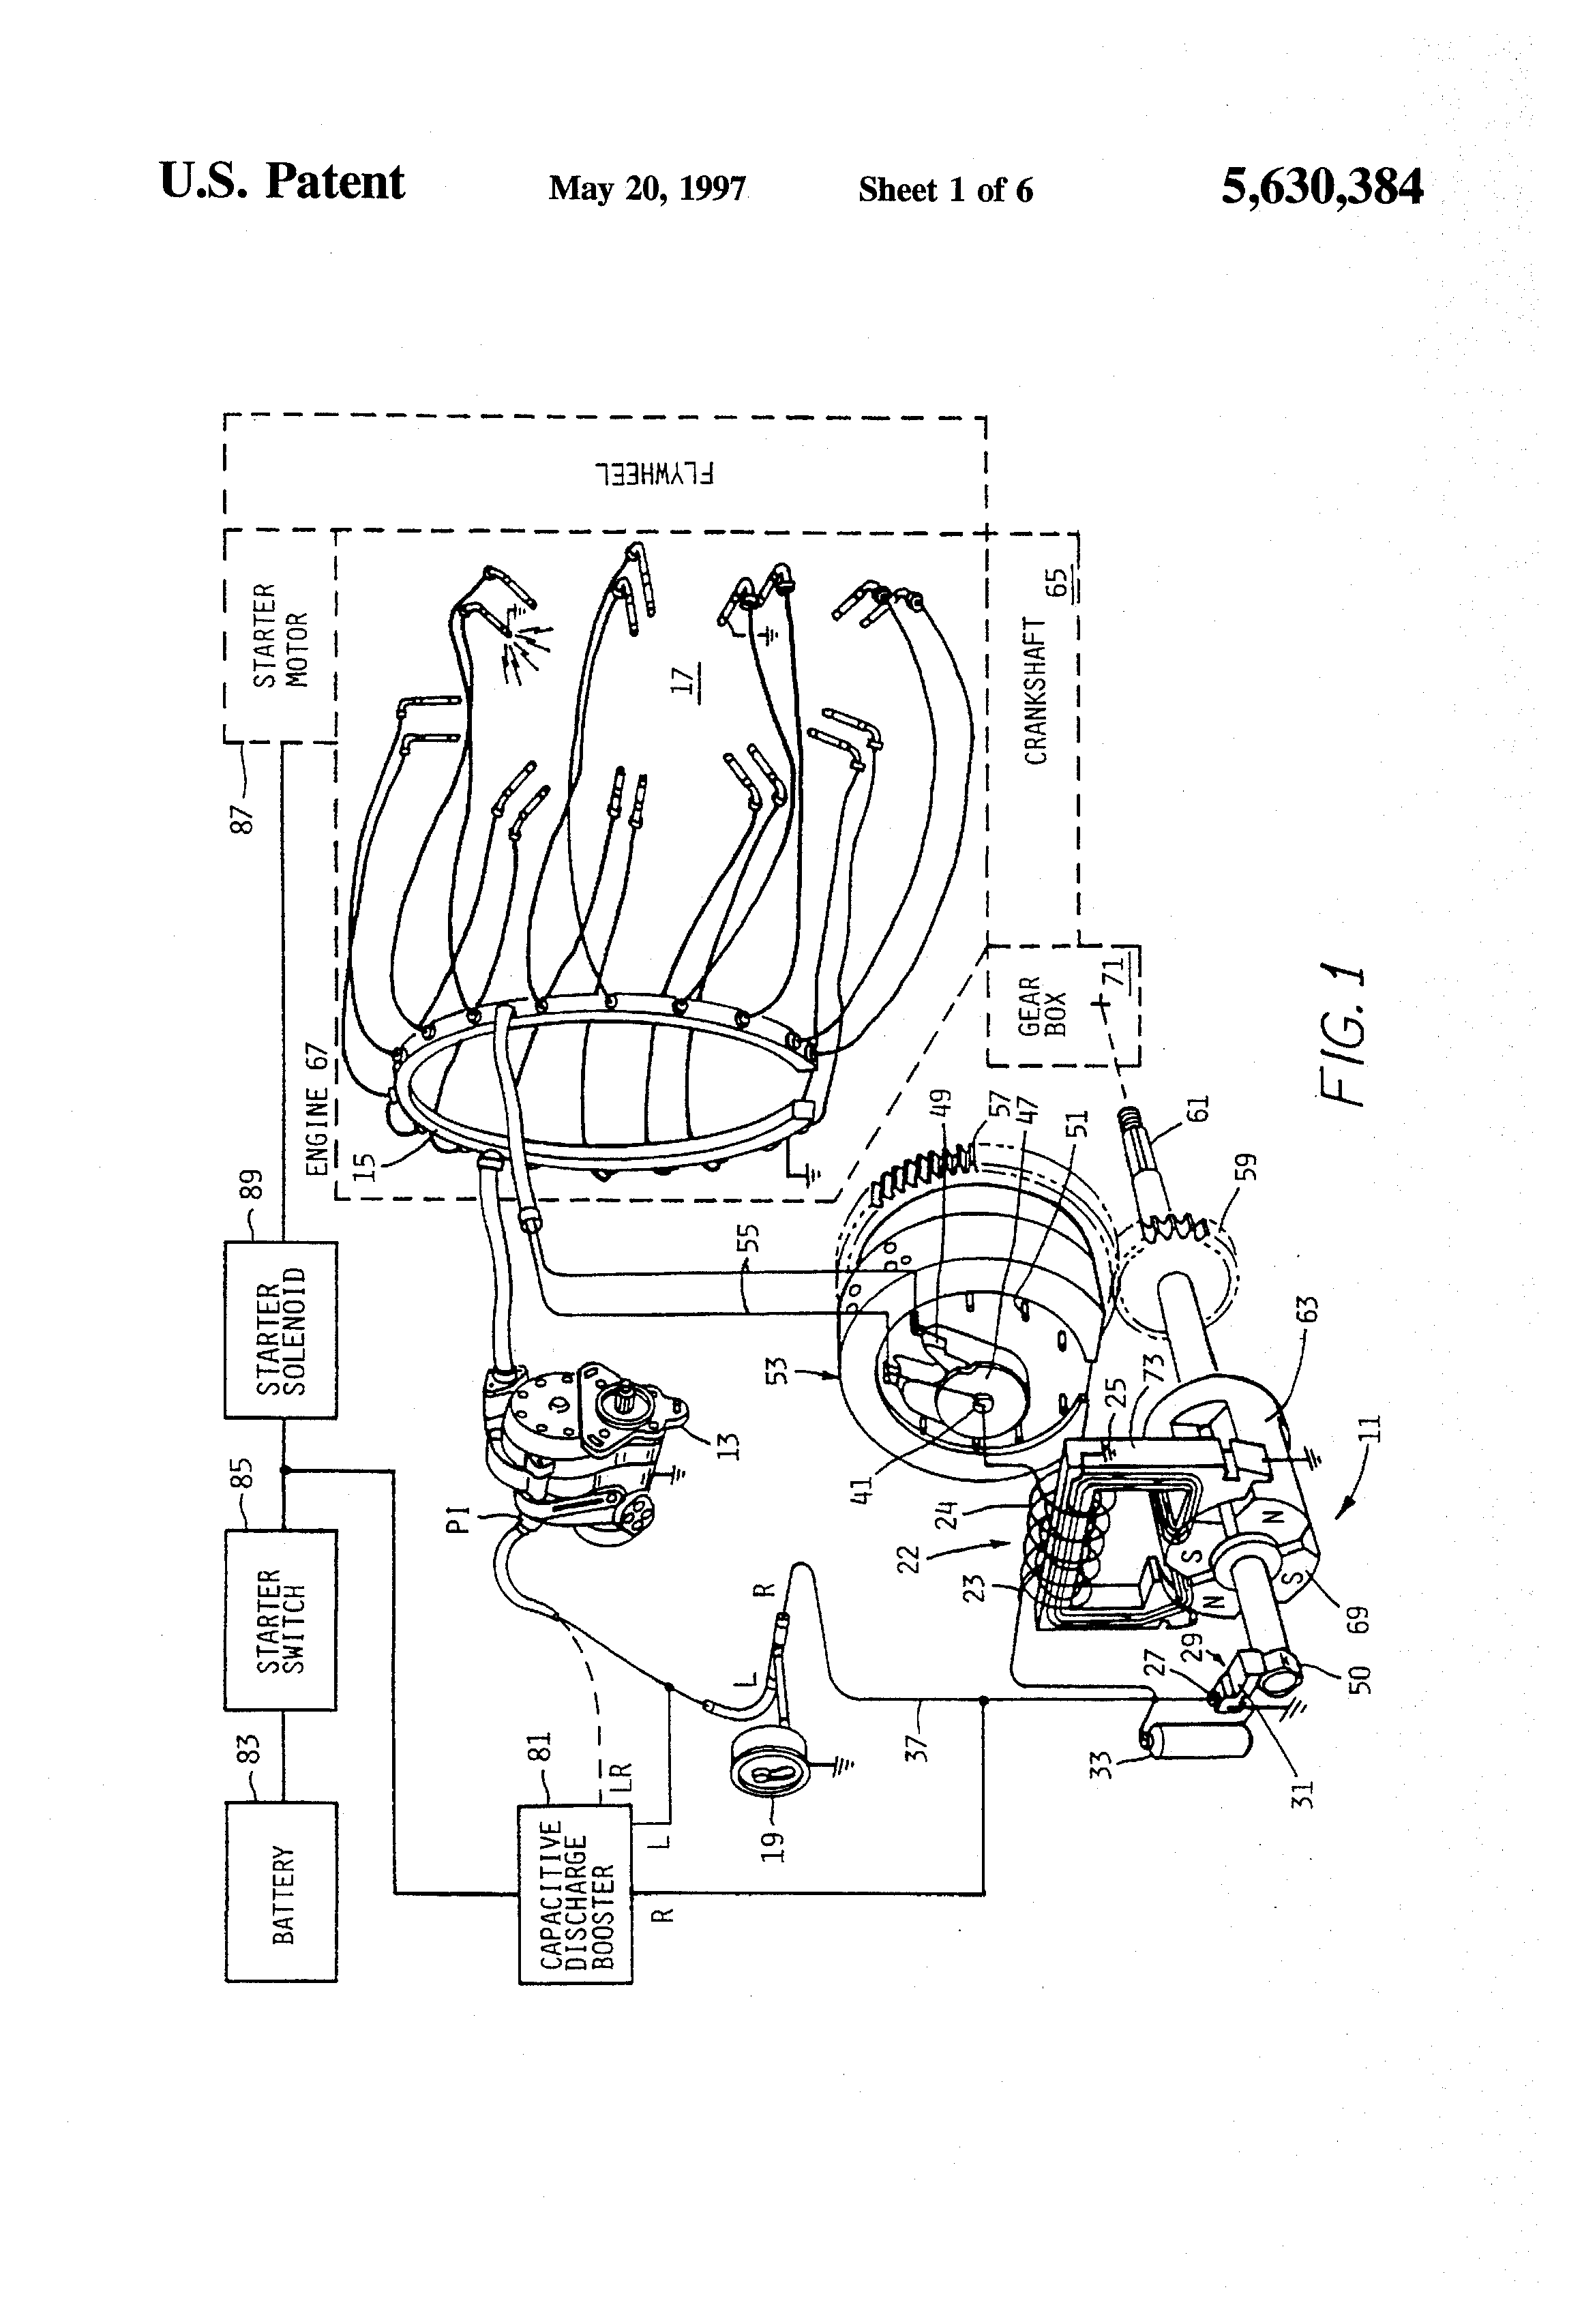 US5630384 1 patent us5630384 magneto based ignition system for reciprocating Wico C Magneto Diagram at nearapp.co